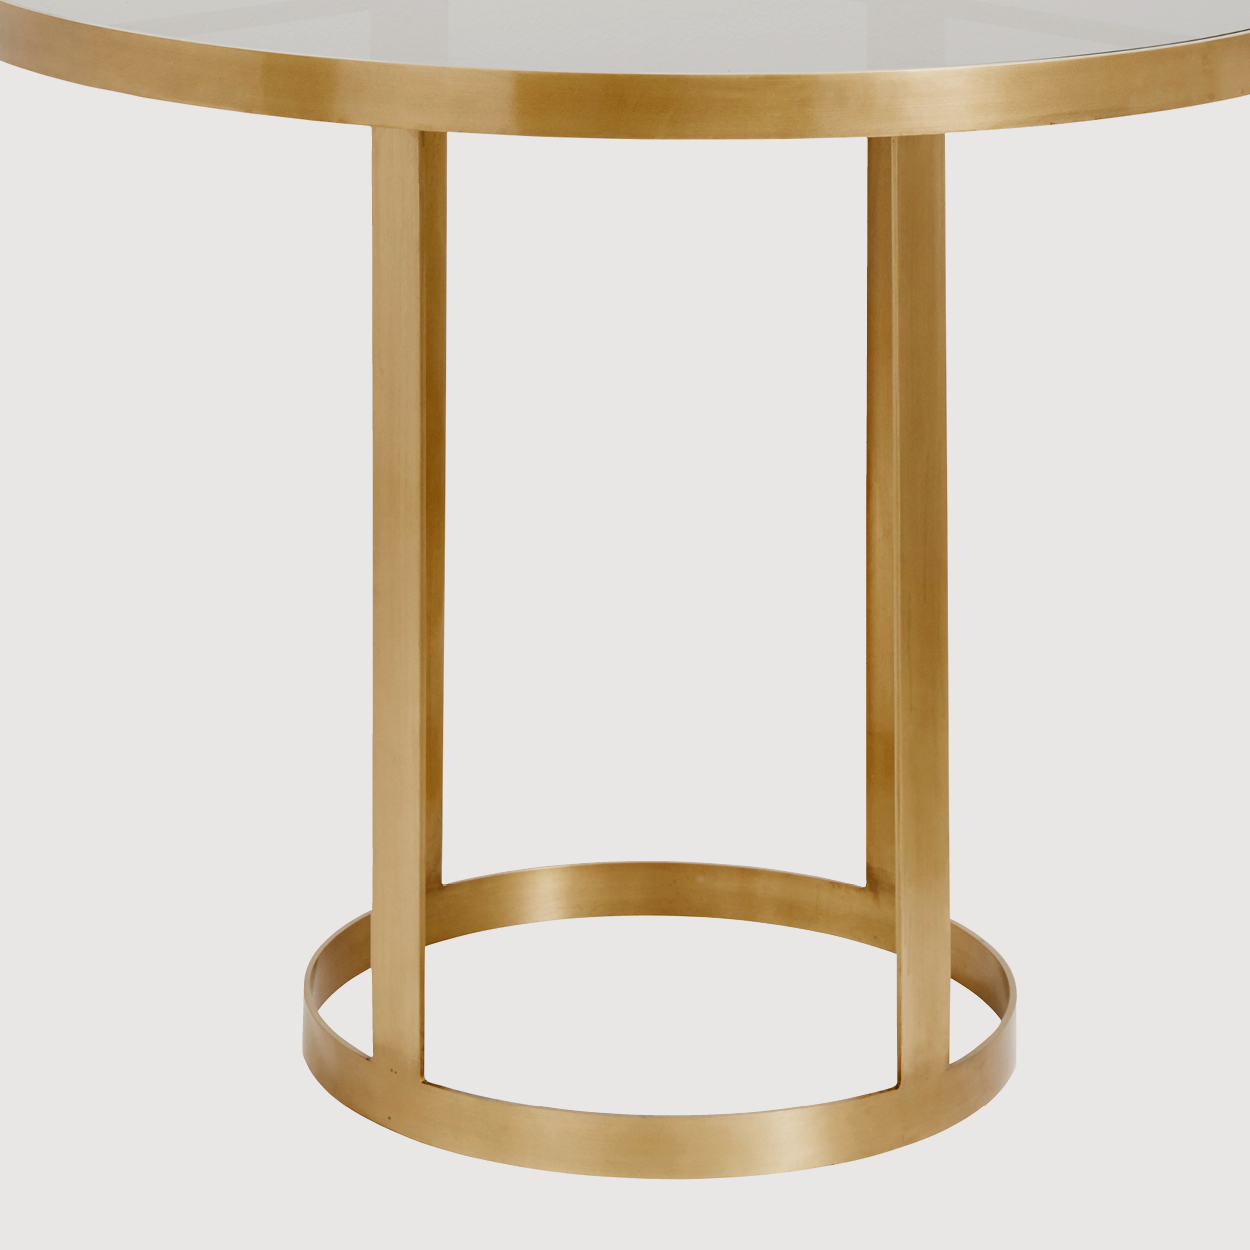 Ascot Gold and Glass Dining Table gallery image